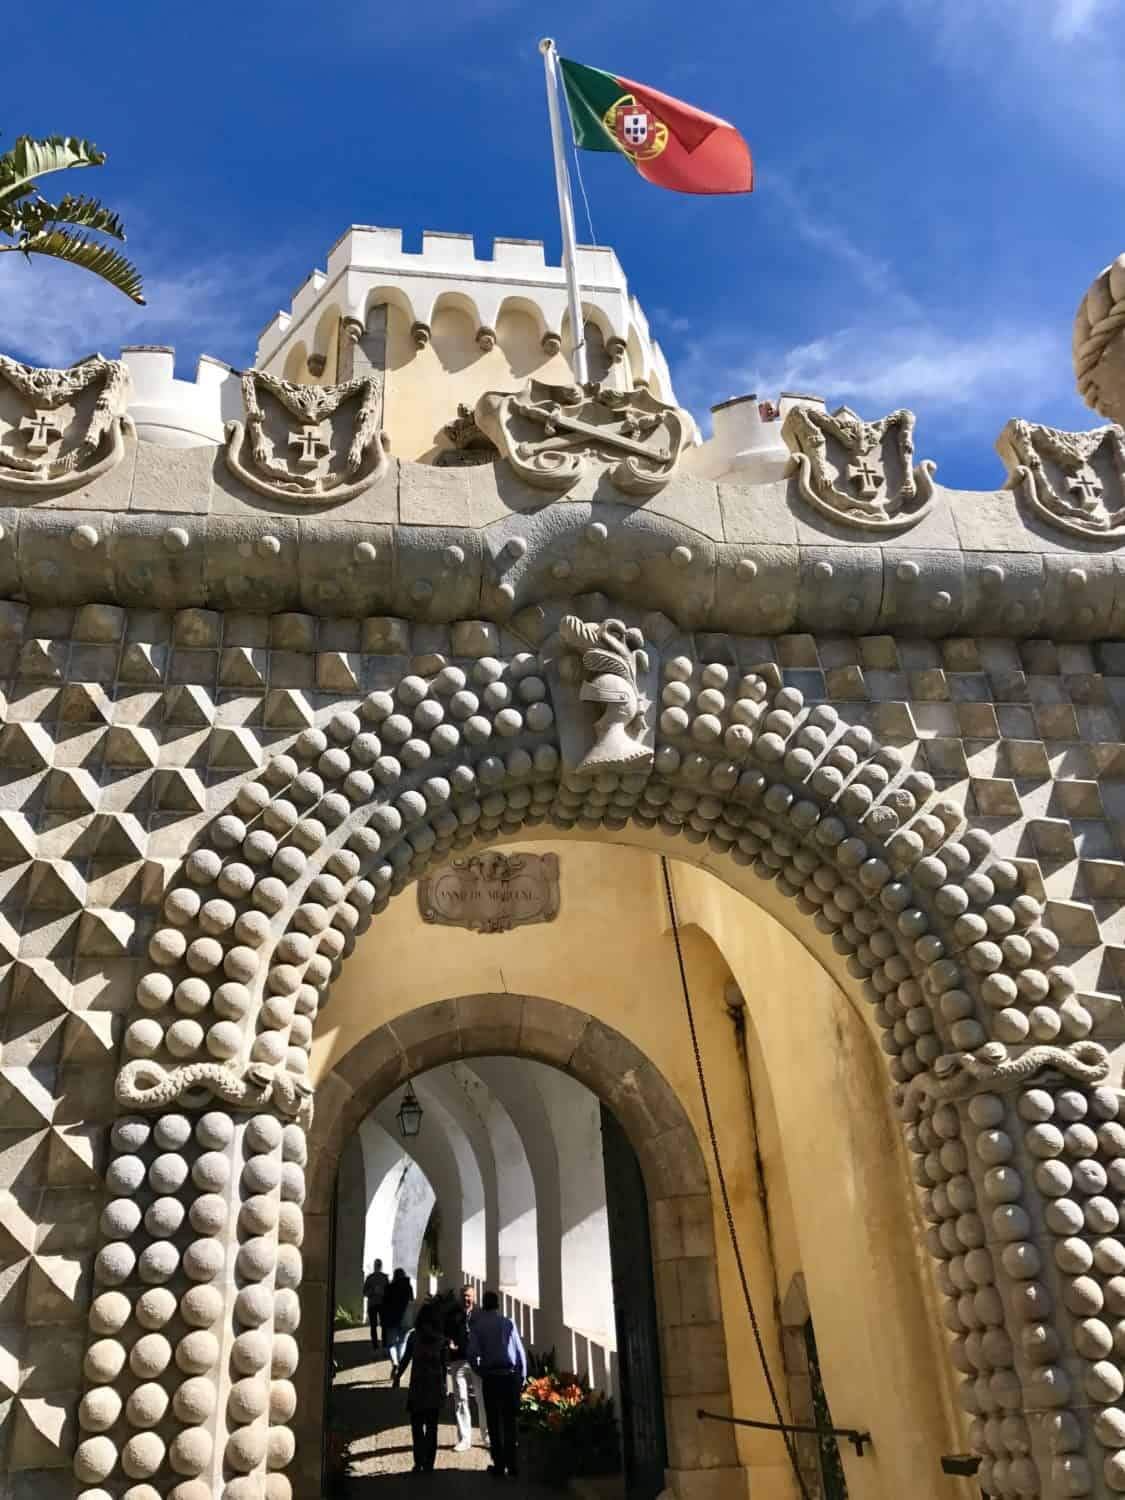 Gorgeous Pena Palace | A guide to visiting magical Sintra, Portugal, a perfect guide for any first-timer | What to do in Sintra, which castles to visit, how to plan your trip | Sintra is the perfect day trip from Lisbon, but you could easily spend a few days exploring all the amazing history! #sintra #portugal